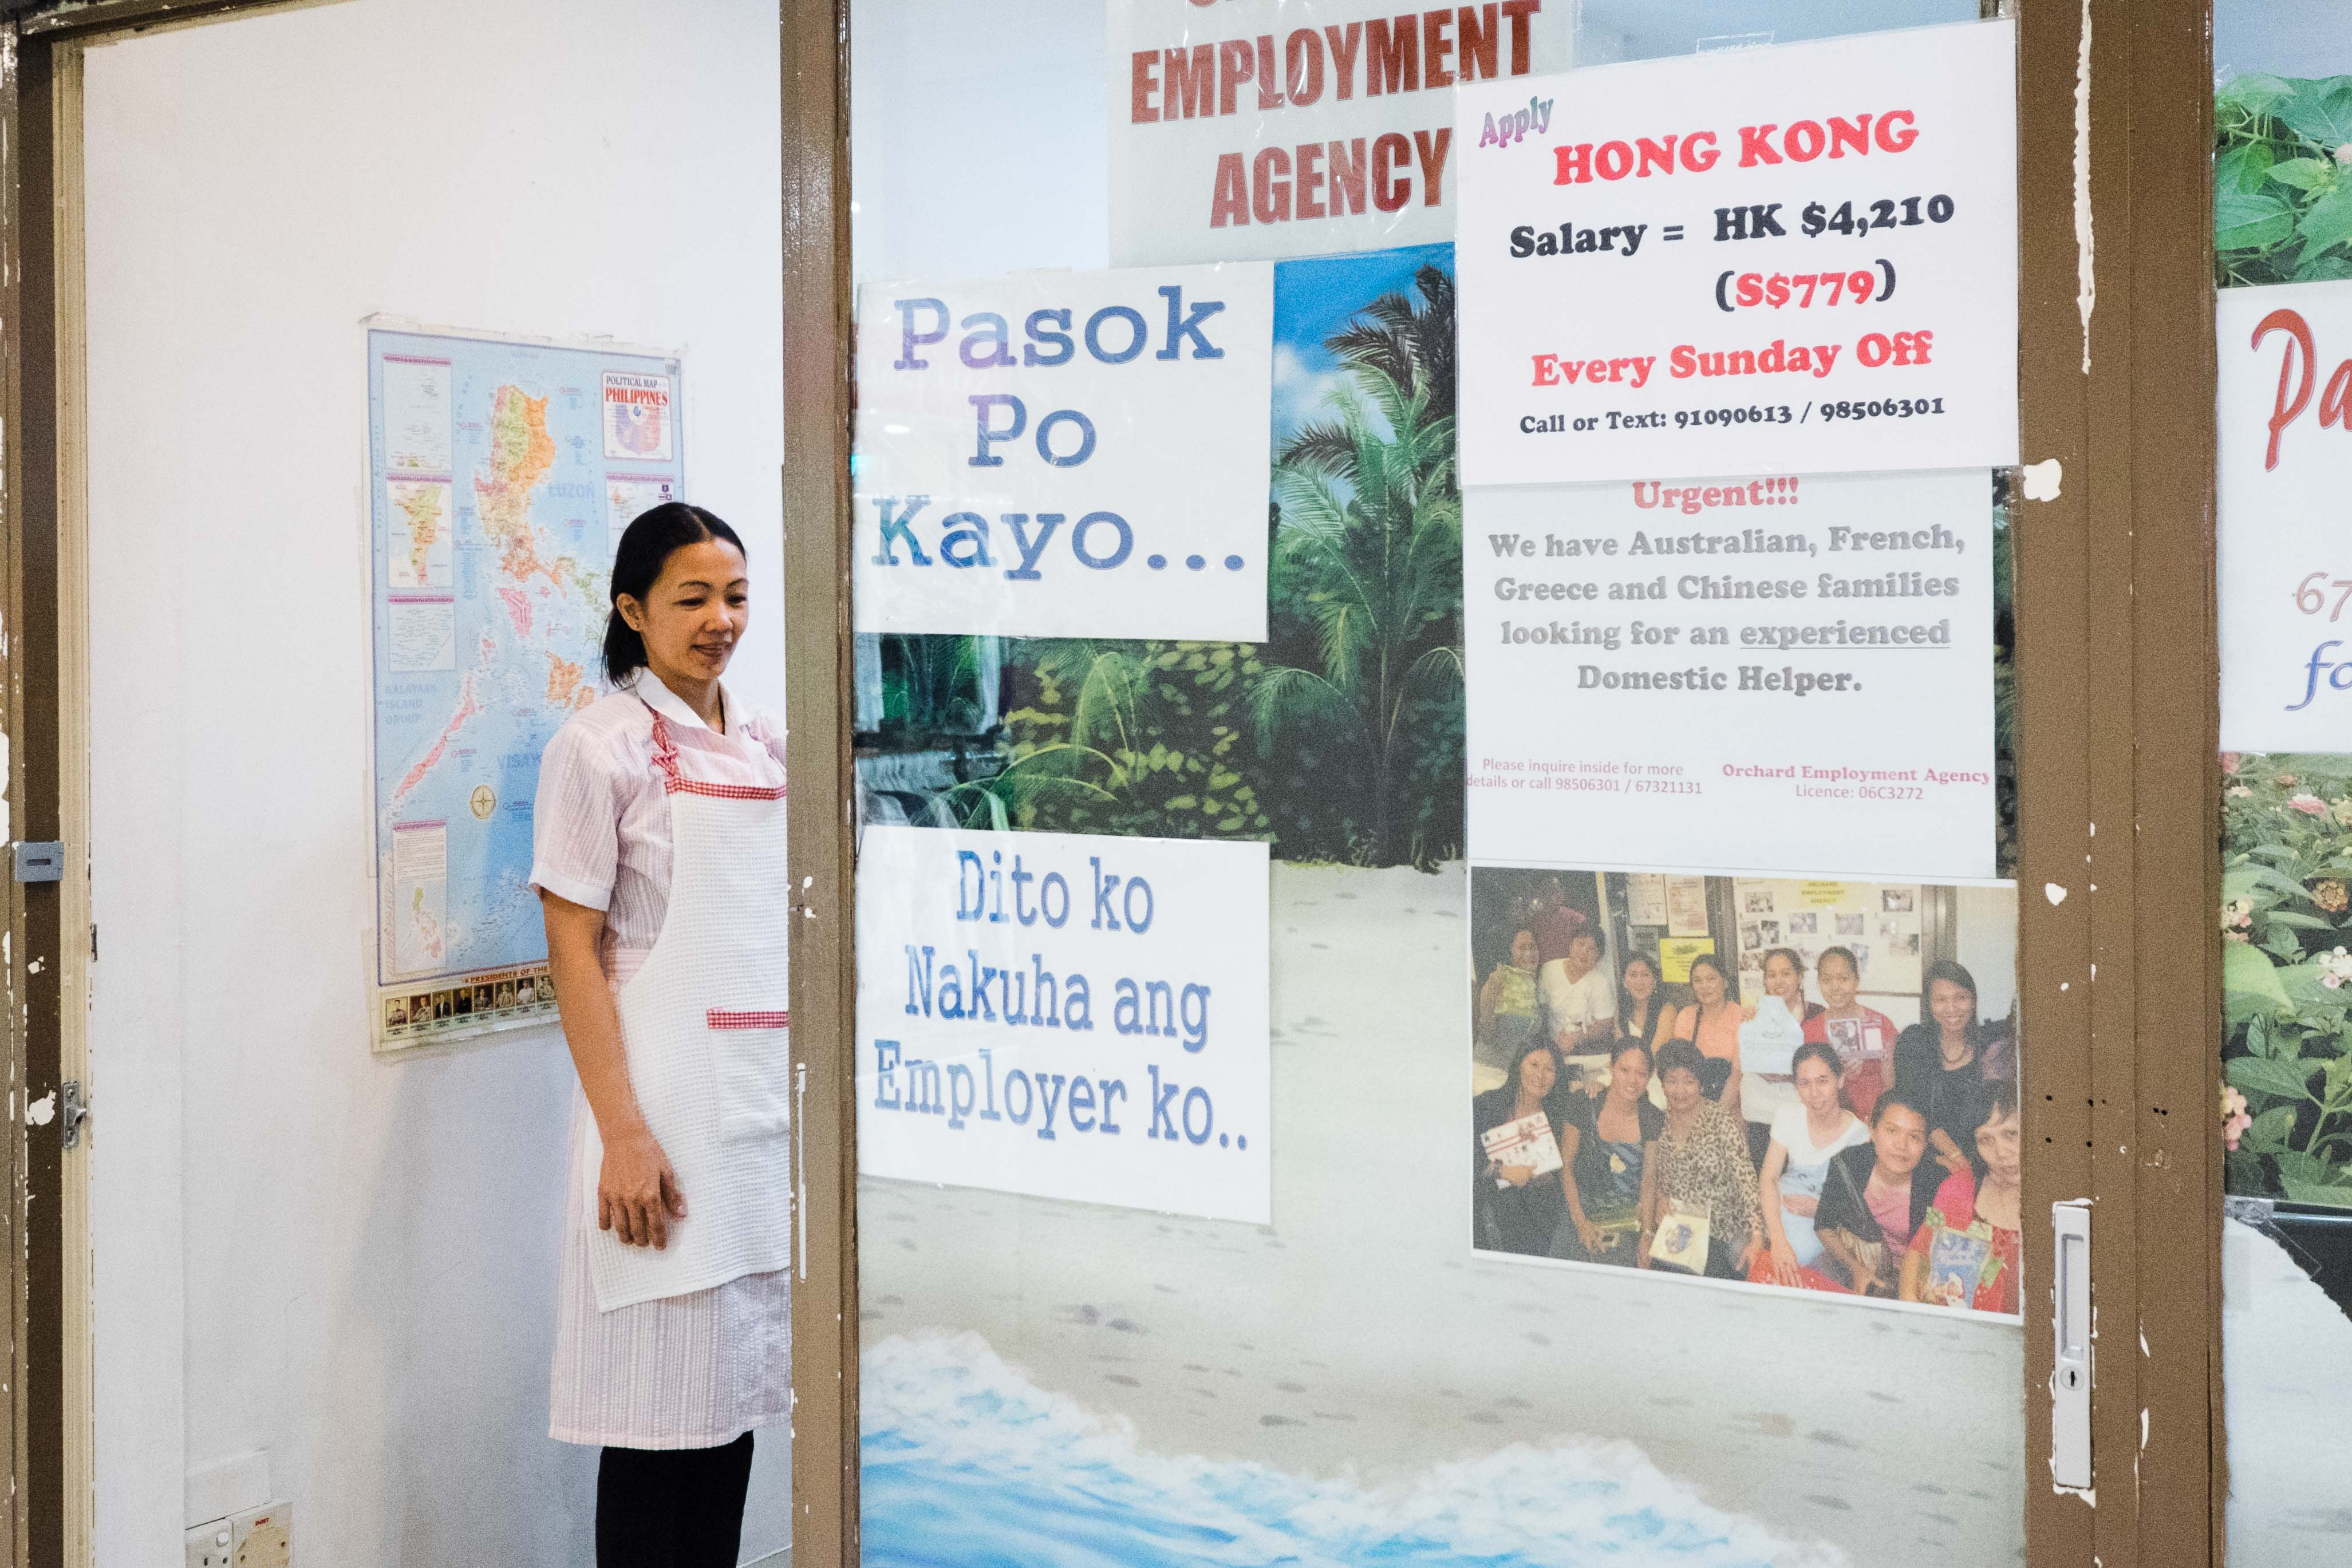 A woman poses for a picture in an employment agency in Lucky Plaza.